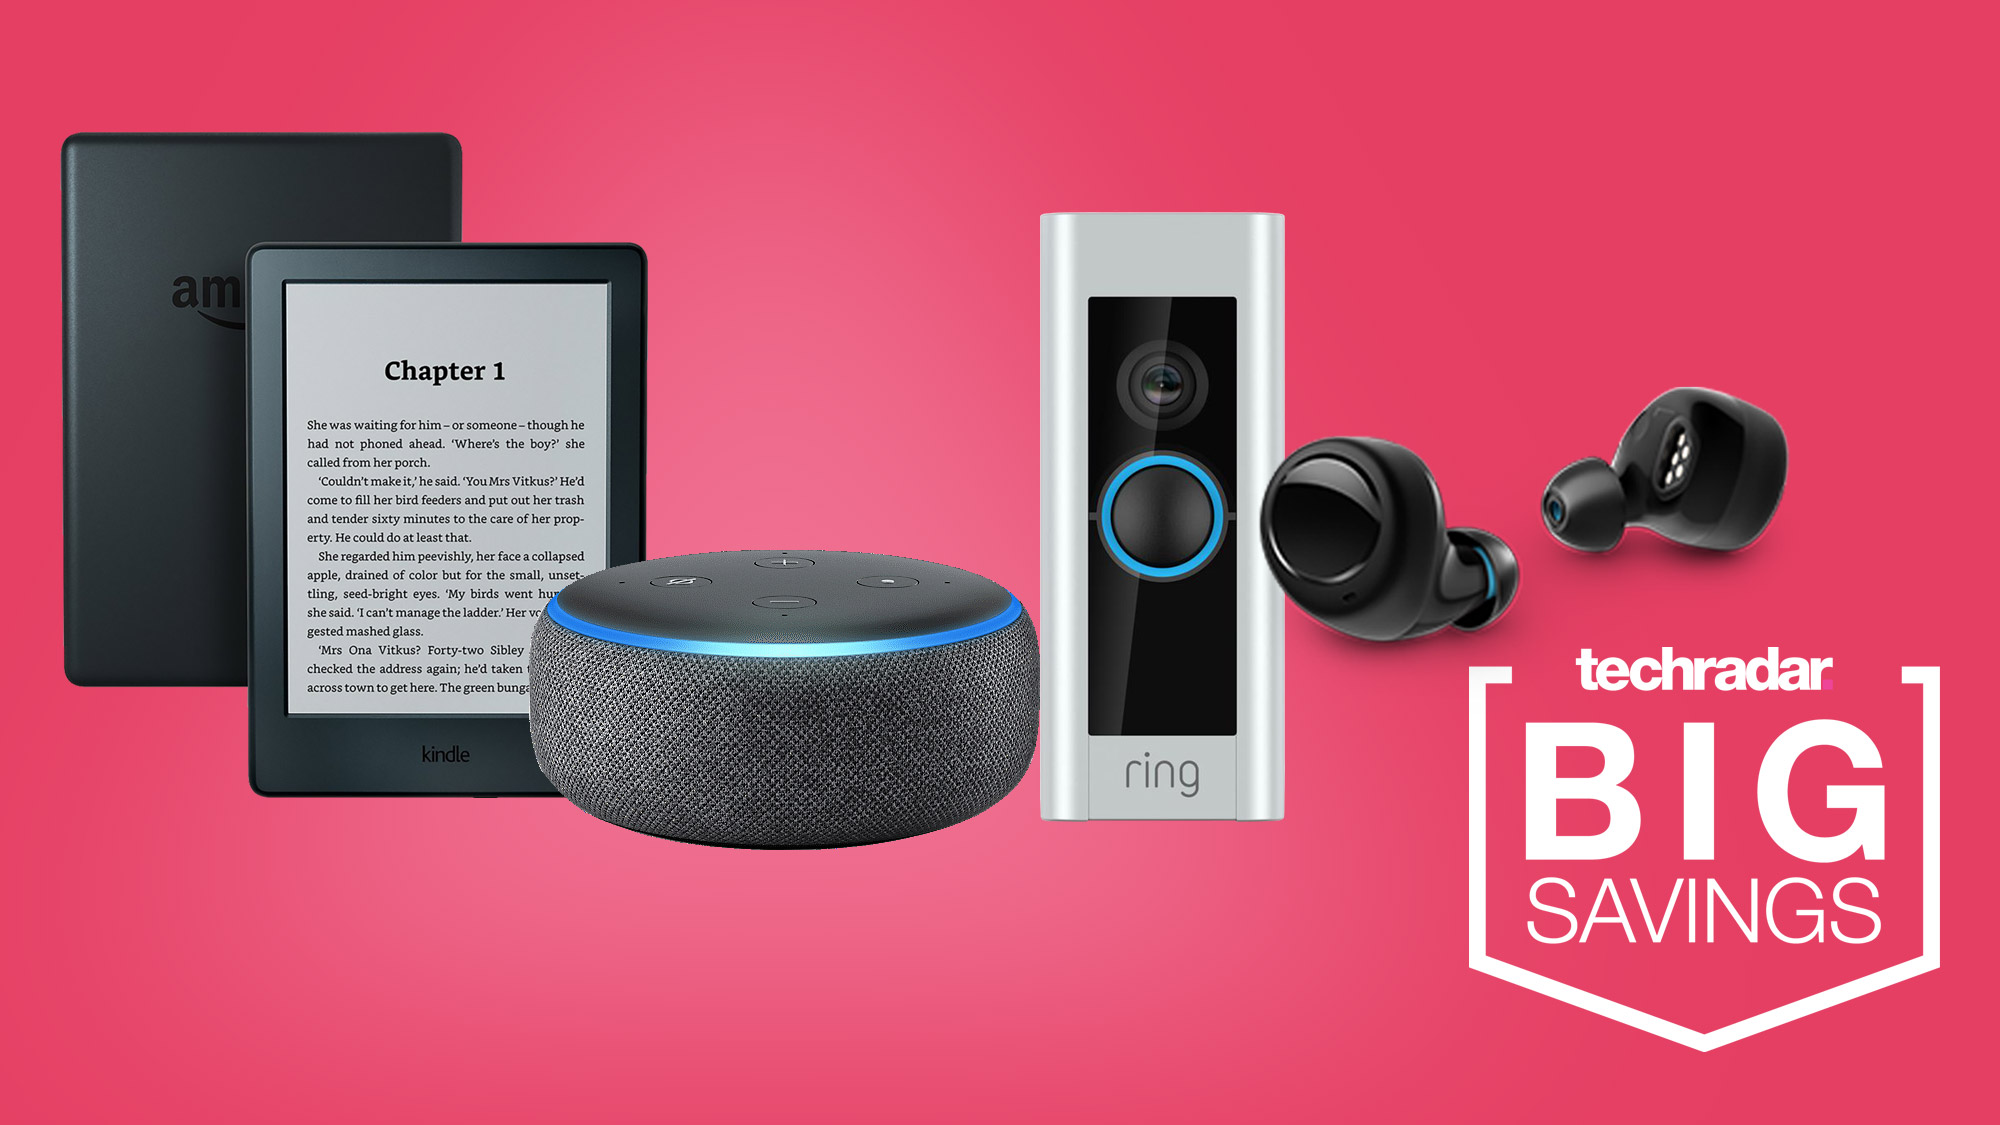 Amazon Valentine's Day sale: deals on the Kindle, Ring Doorbell, Echo Buds and more